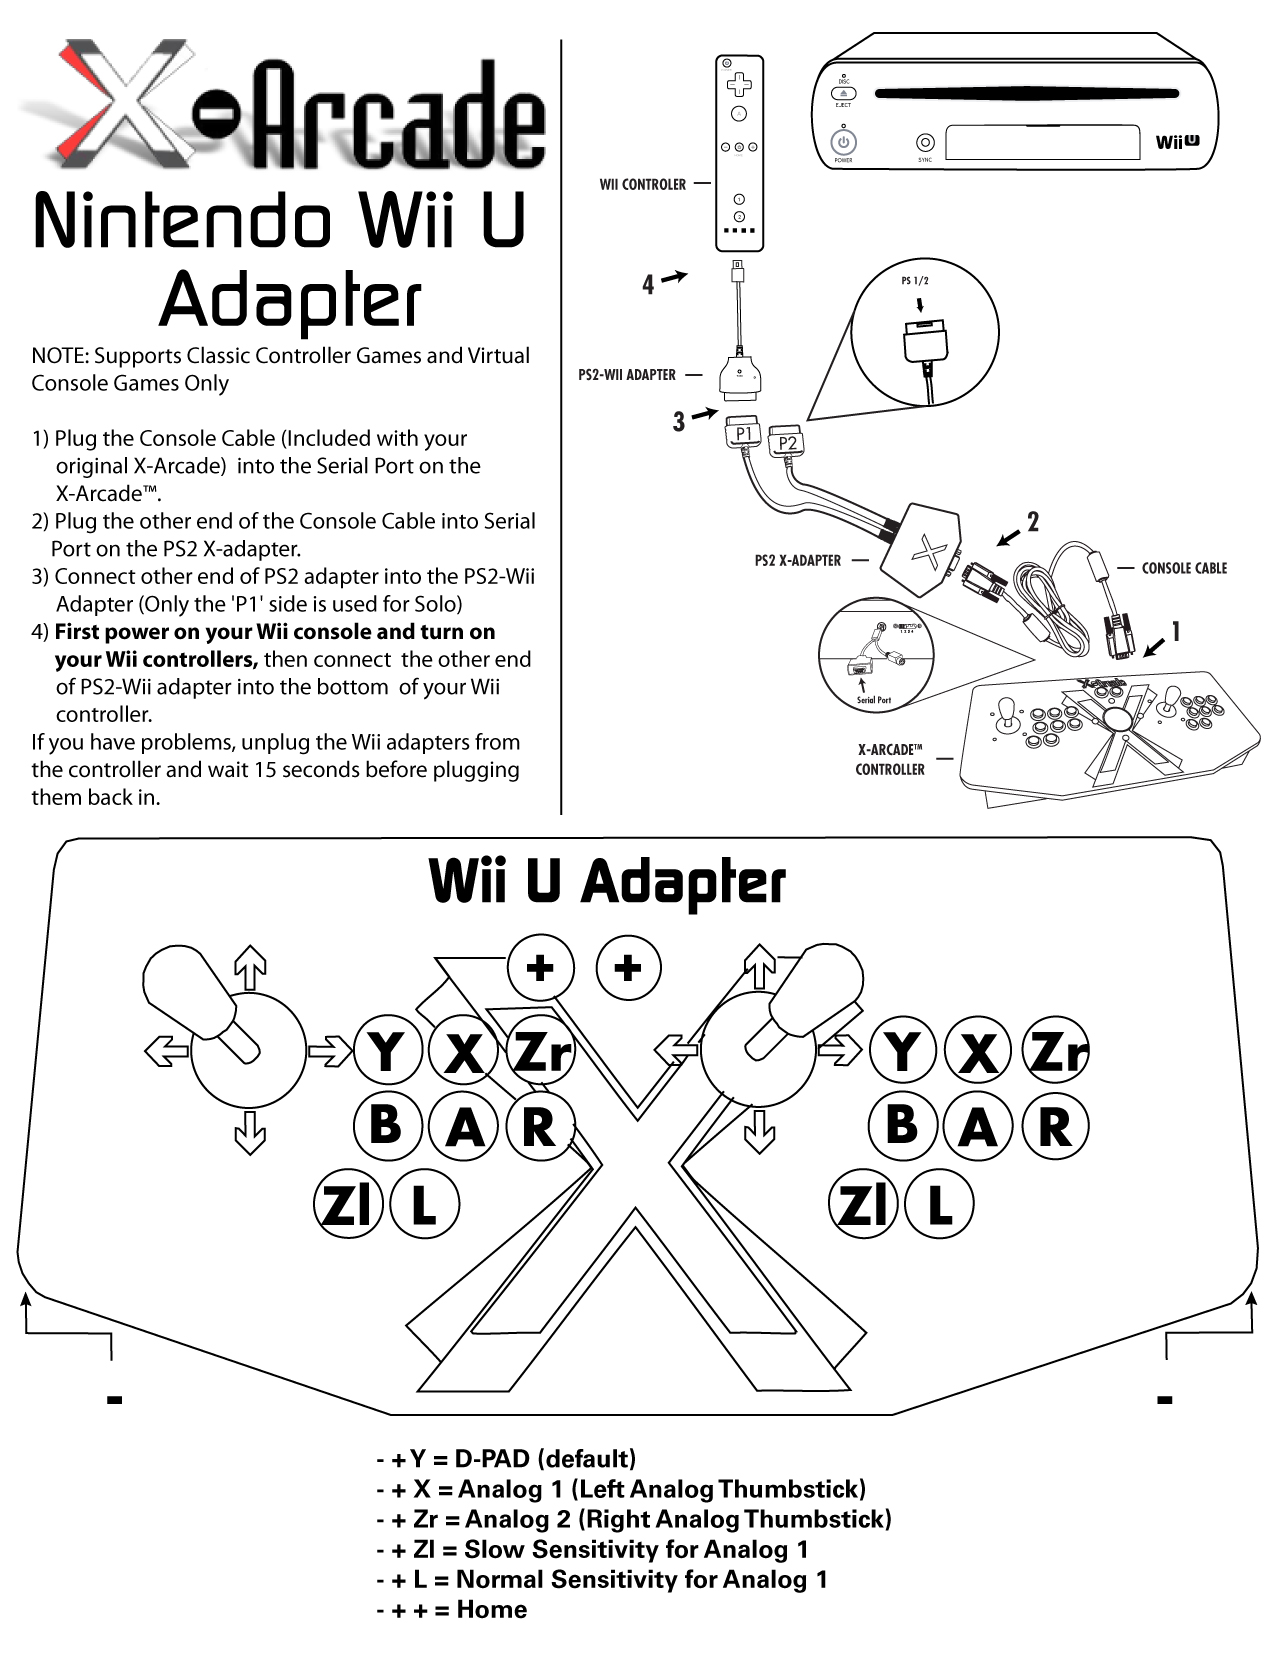 How to play wii games on the wii u | nintendo support.